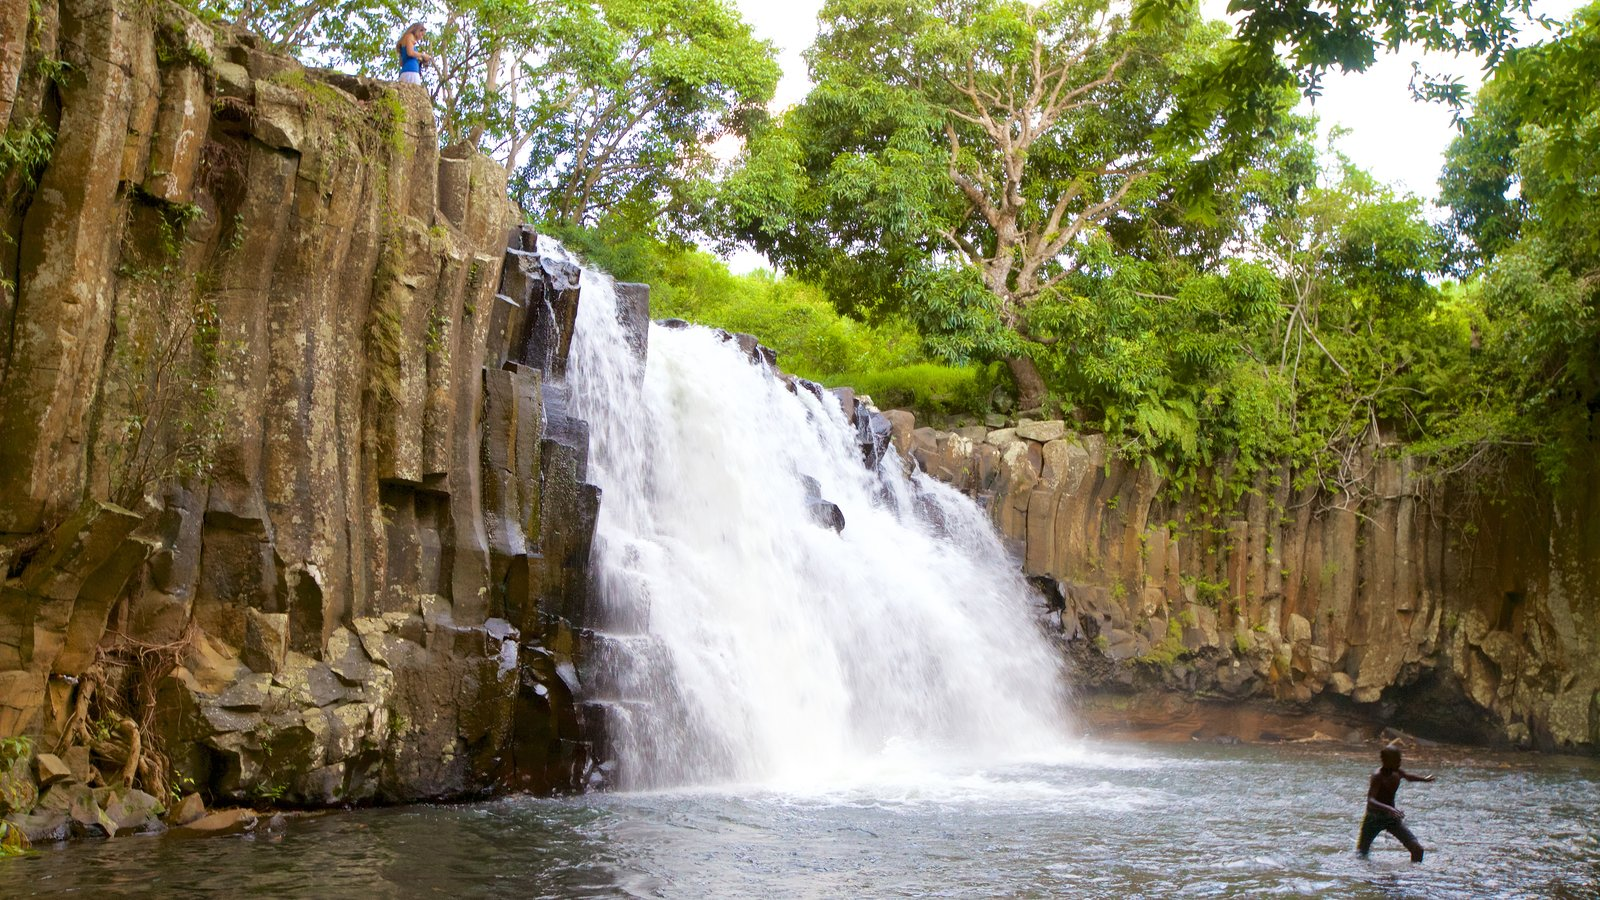 Black River Gorges National Park featuring a lake or waterhole, a gorge or canyon and a waterfall